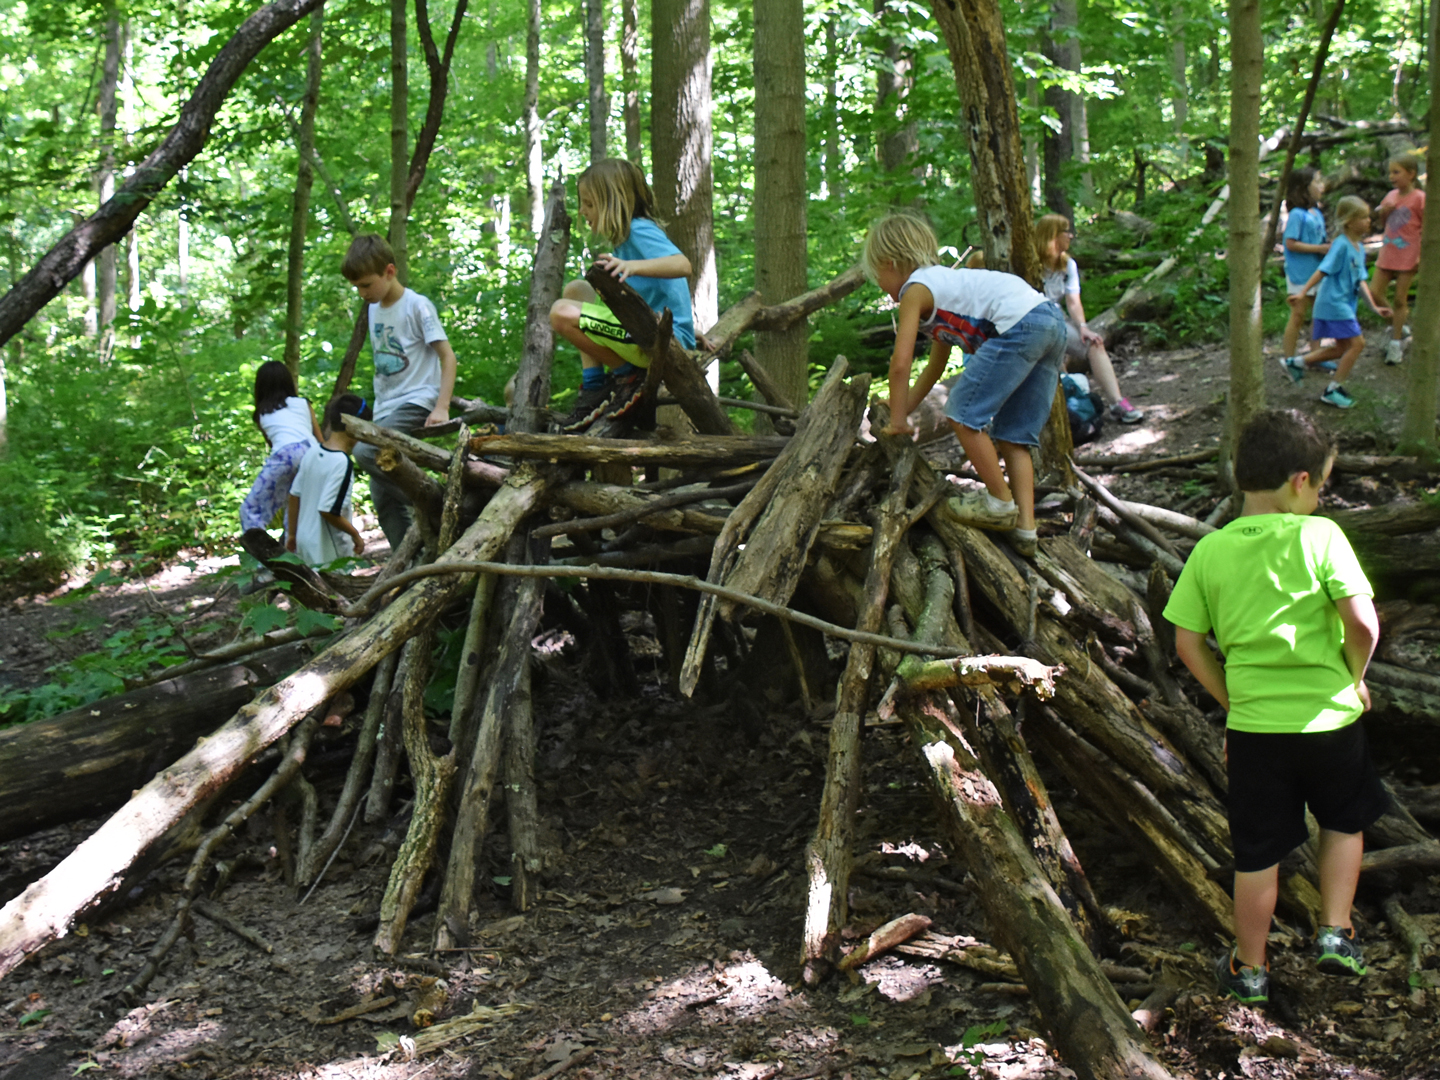 1080p_Camp-2017_kids-play-on-fort-in-natural-play-area_SHW_v-gordon.jpg